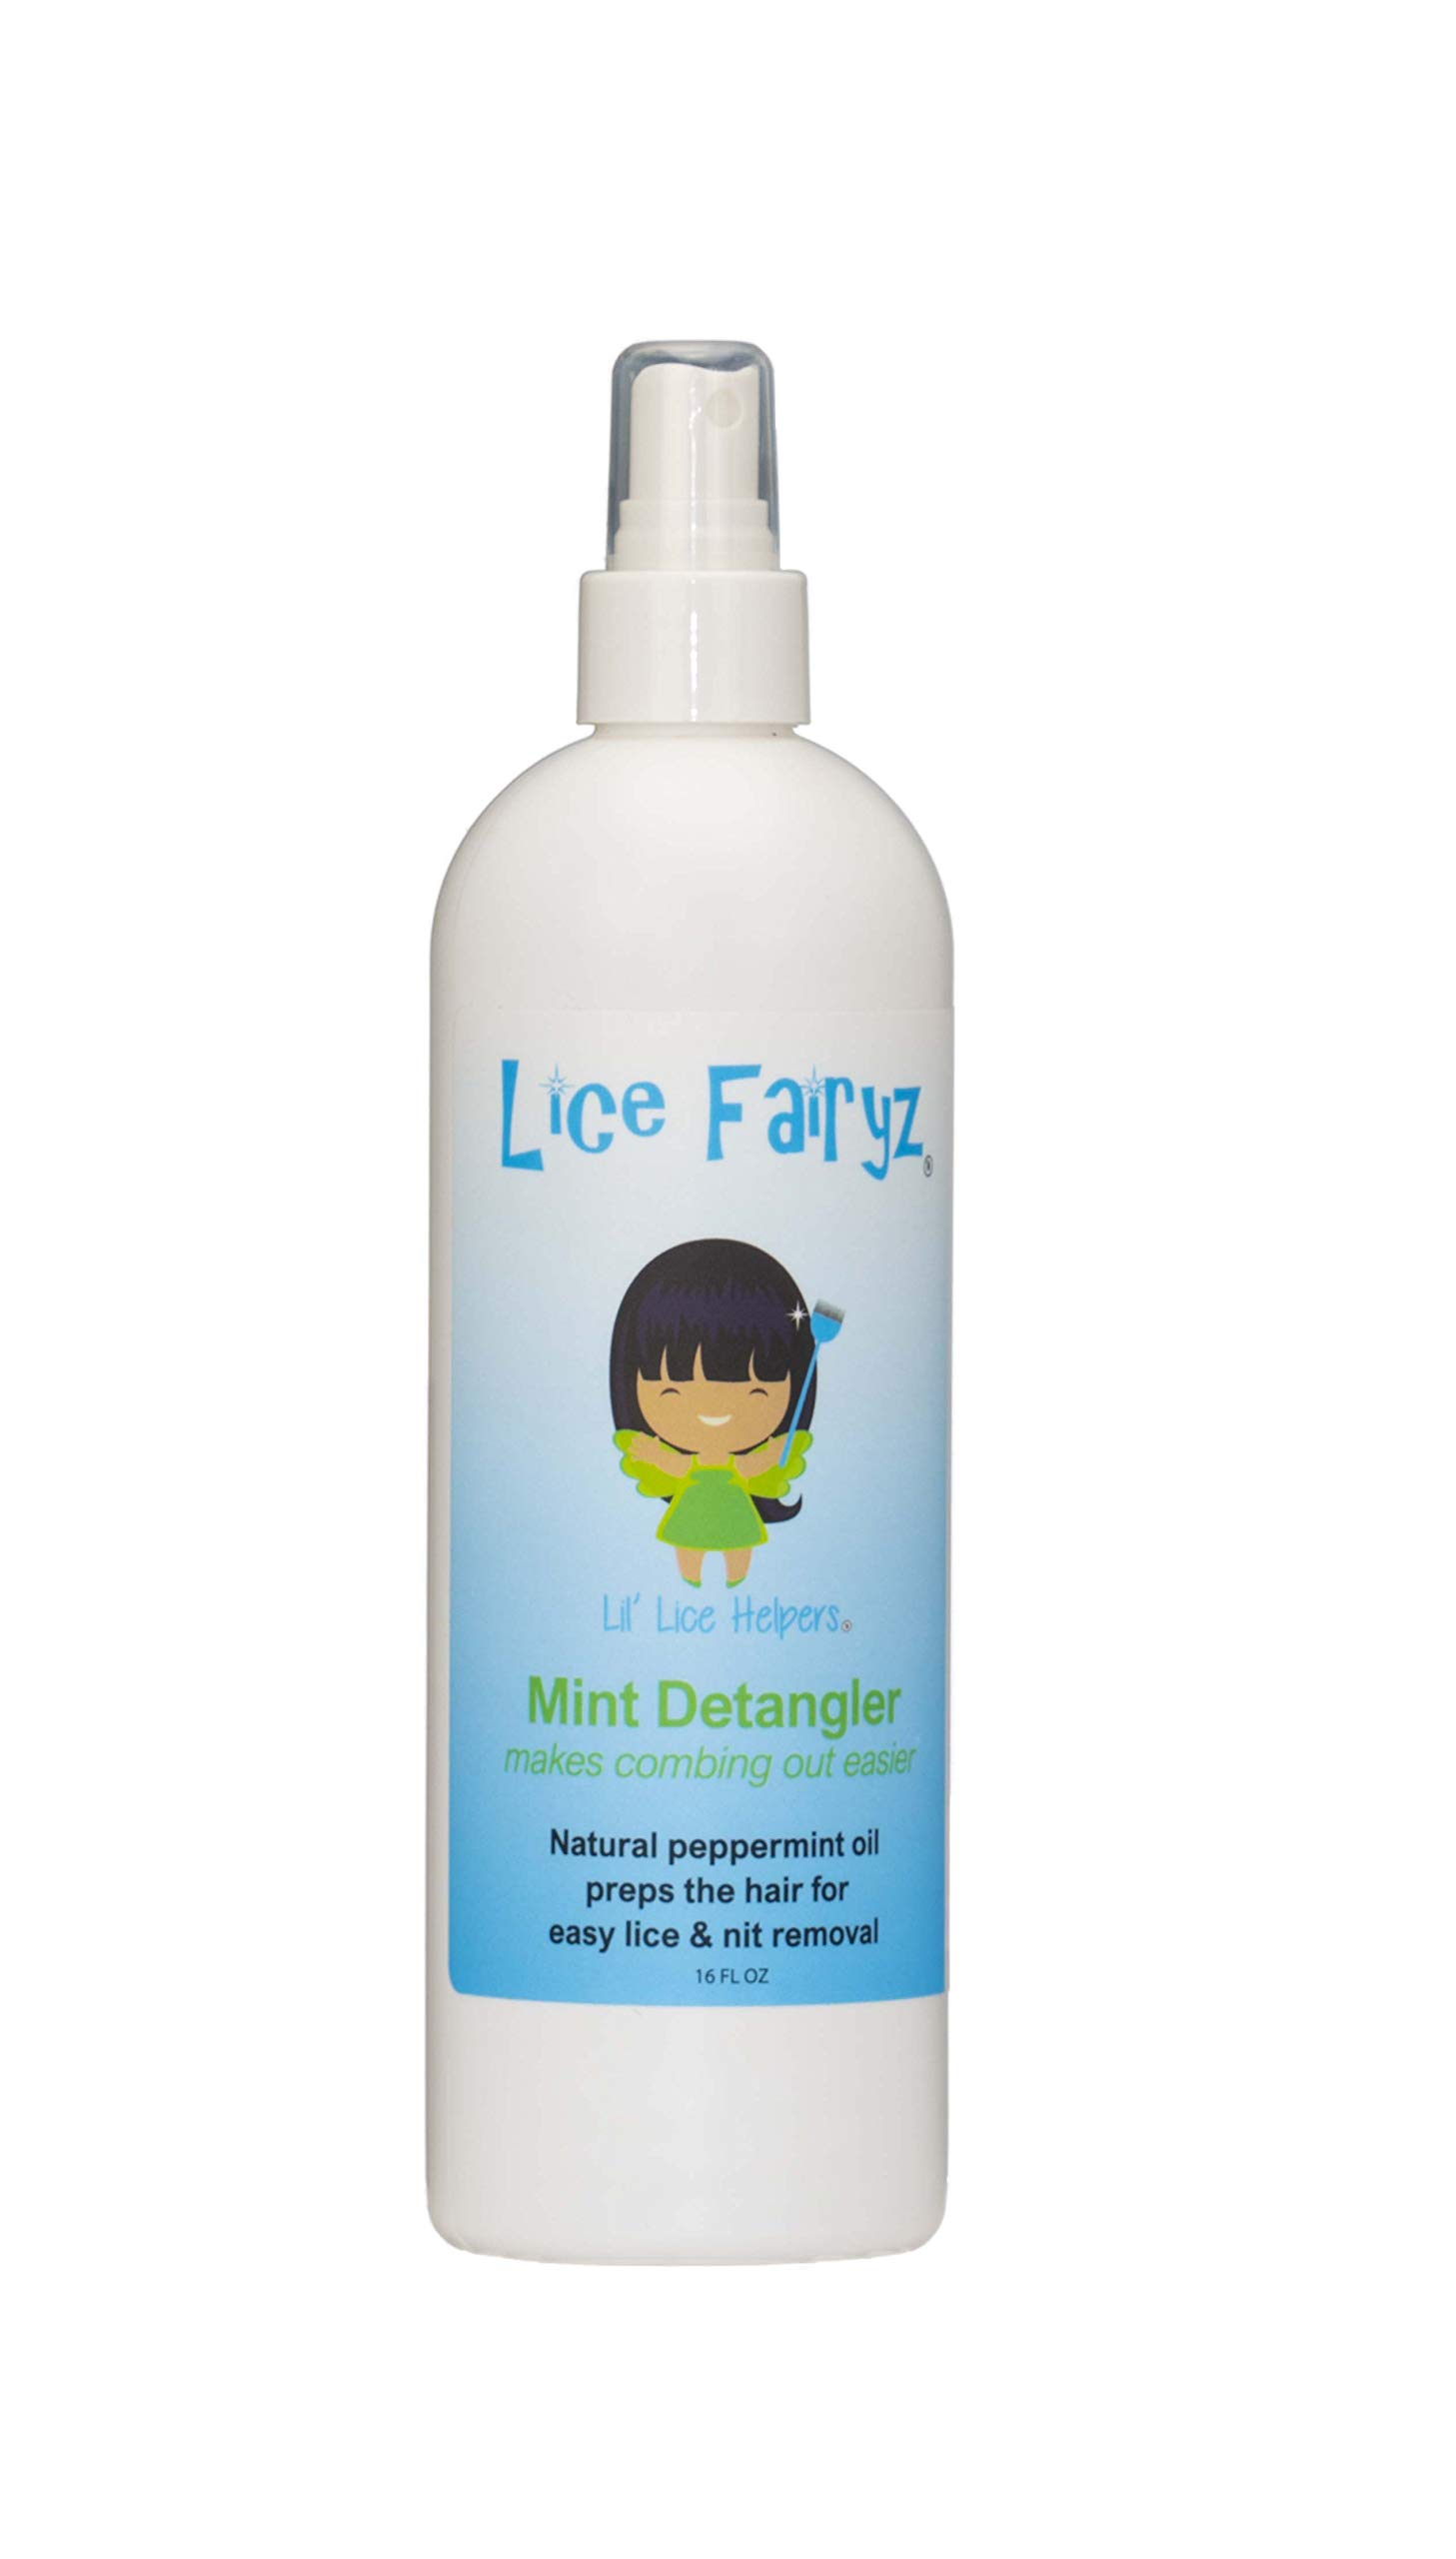 Lice Fairyz Mint Detangler Prepares Hair for Easy Lice Egg & Nit Removal & Naturally Prevents Lice Combines Detangling Conditioner w/Best Natural Method to Repel Lice Peppermint Essential Oils.